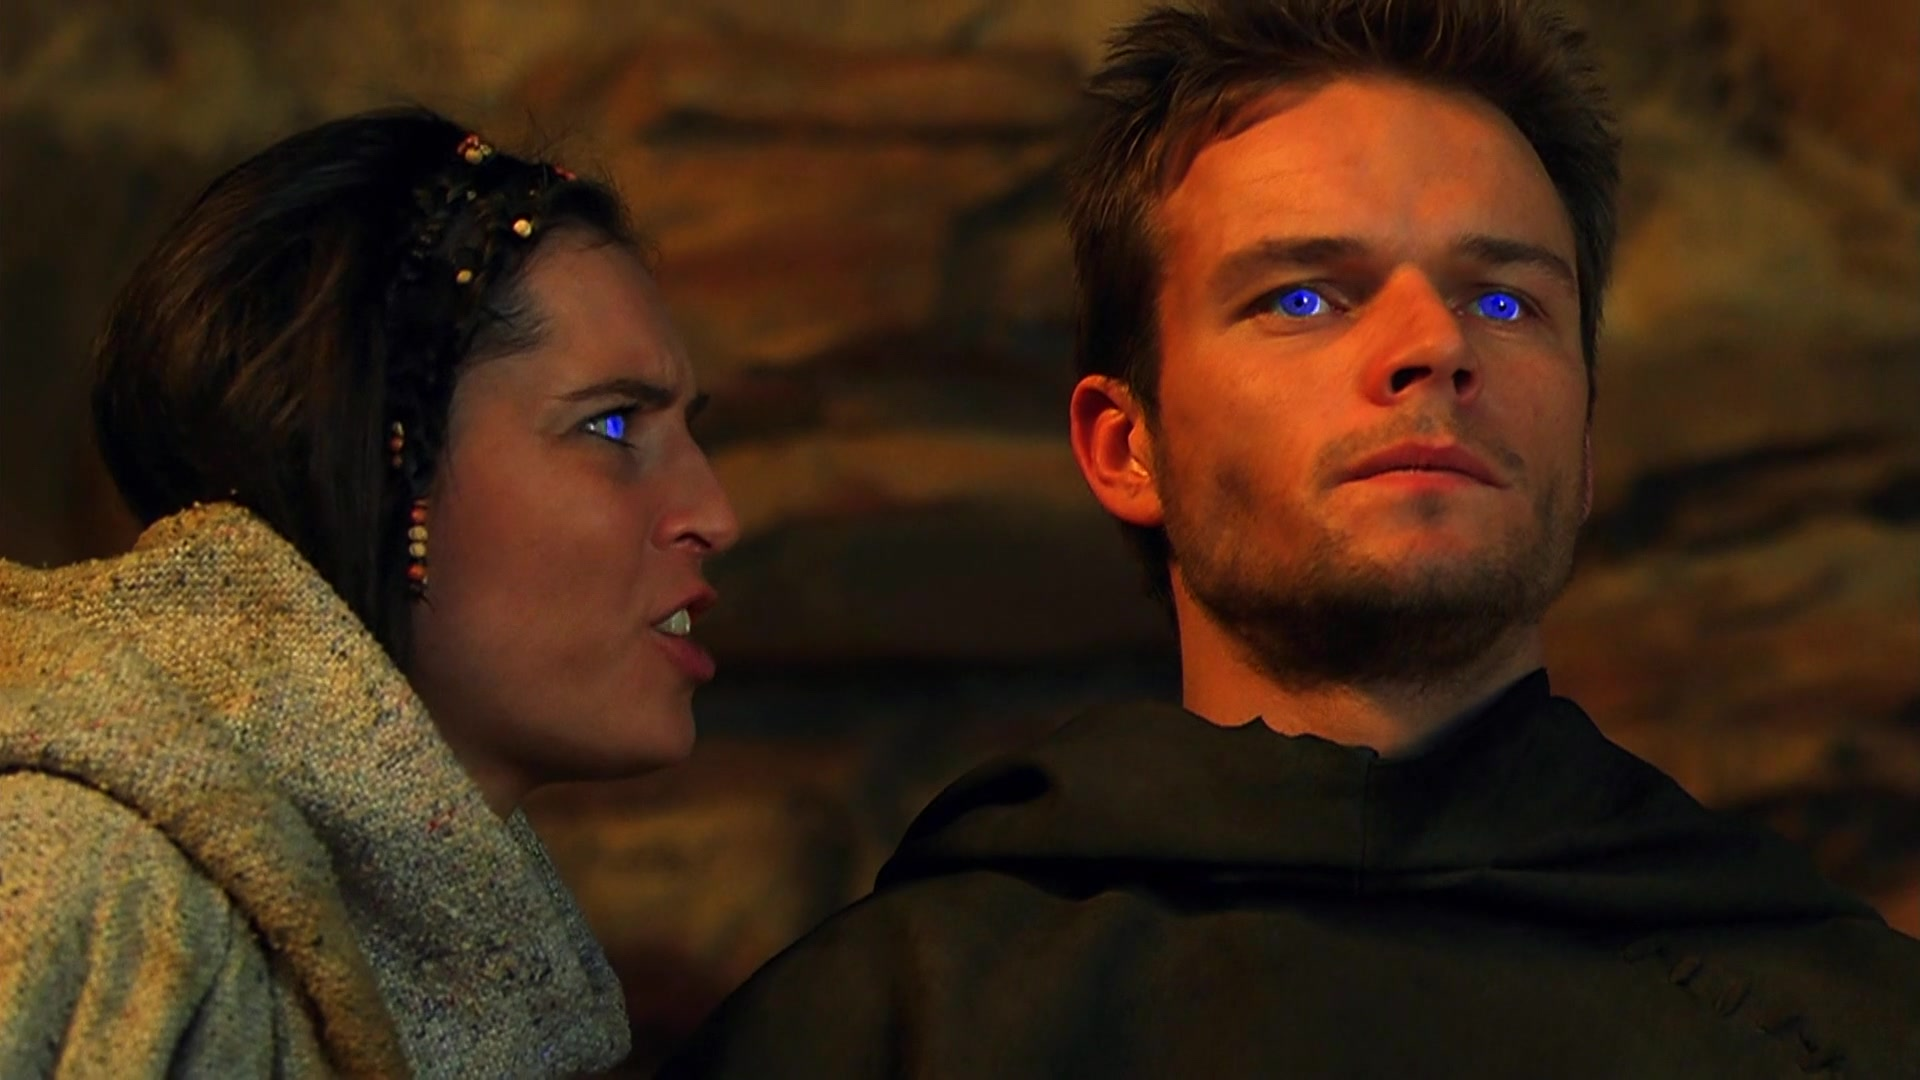 Paul Atreides (Alec Newman) and his Fremen wife Chani (Barbora Kodetova) in Dune (2000)